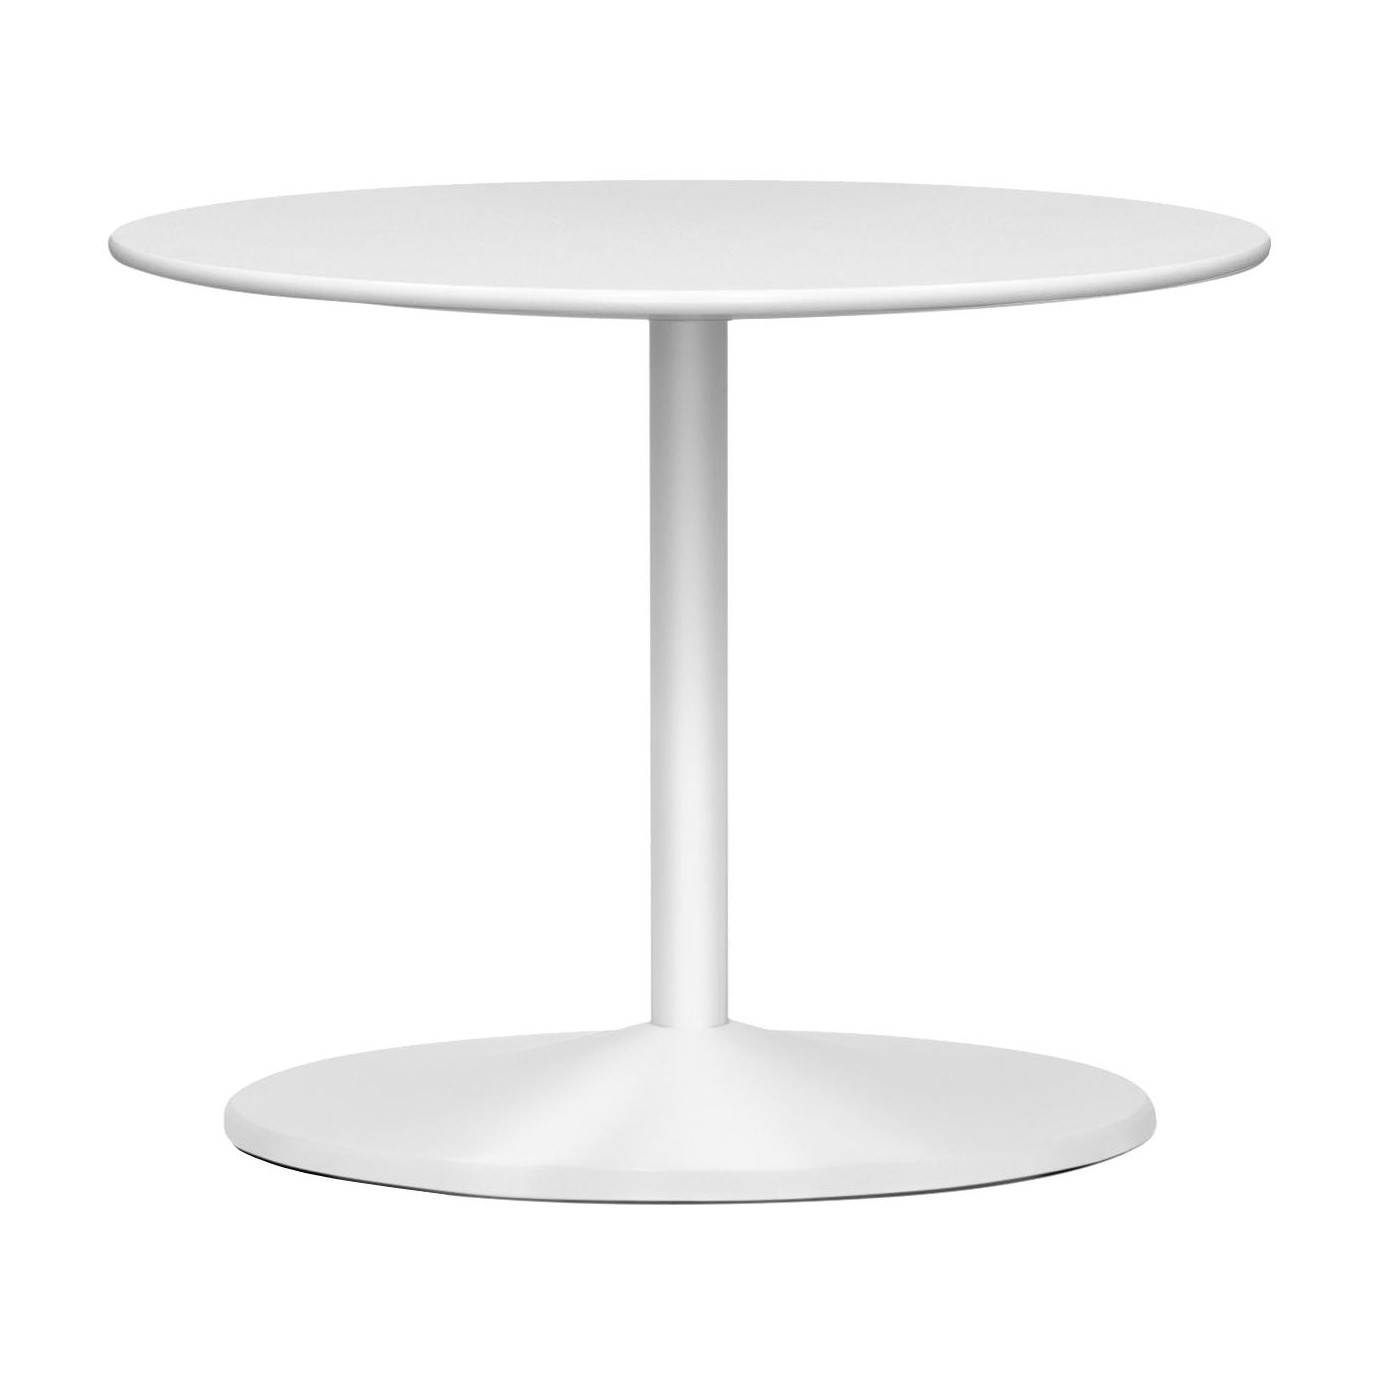 Montana Table Panton Ø 60cm Ambientedirect